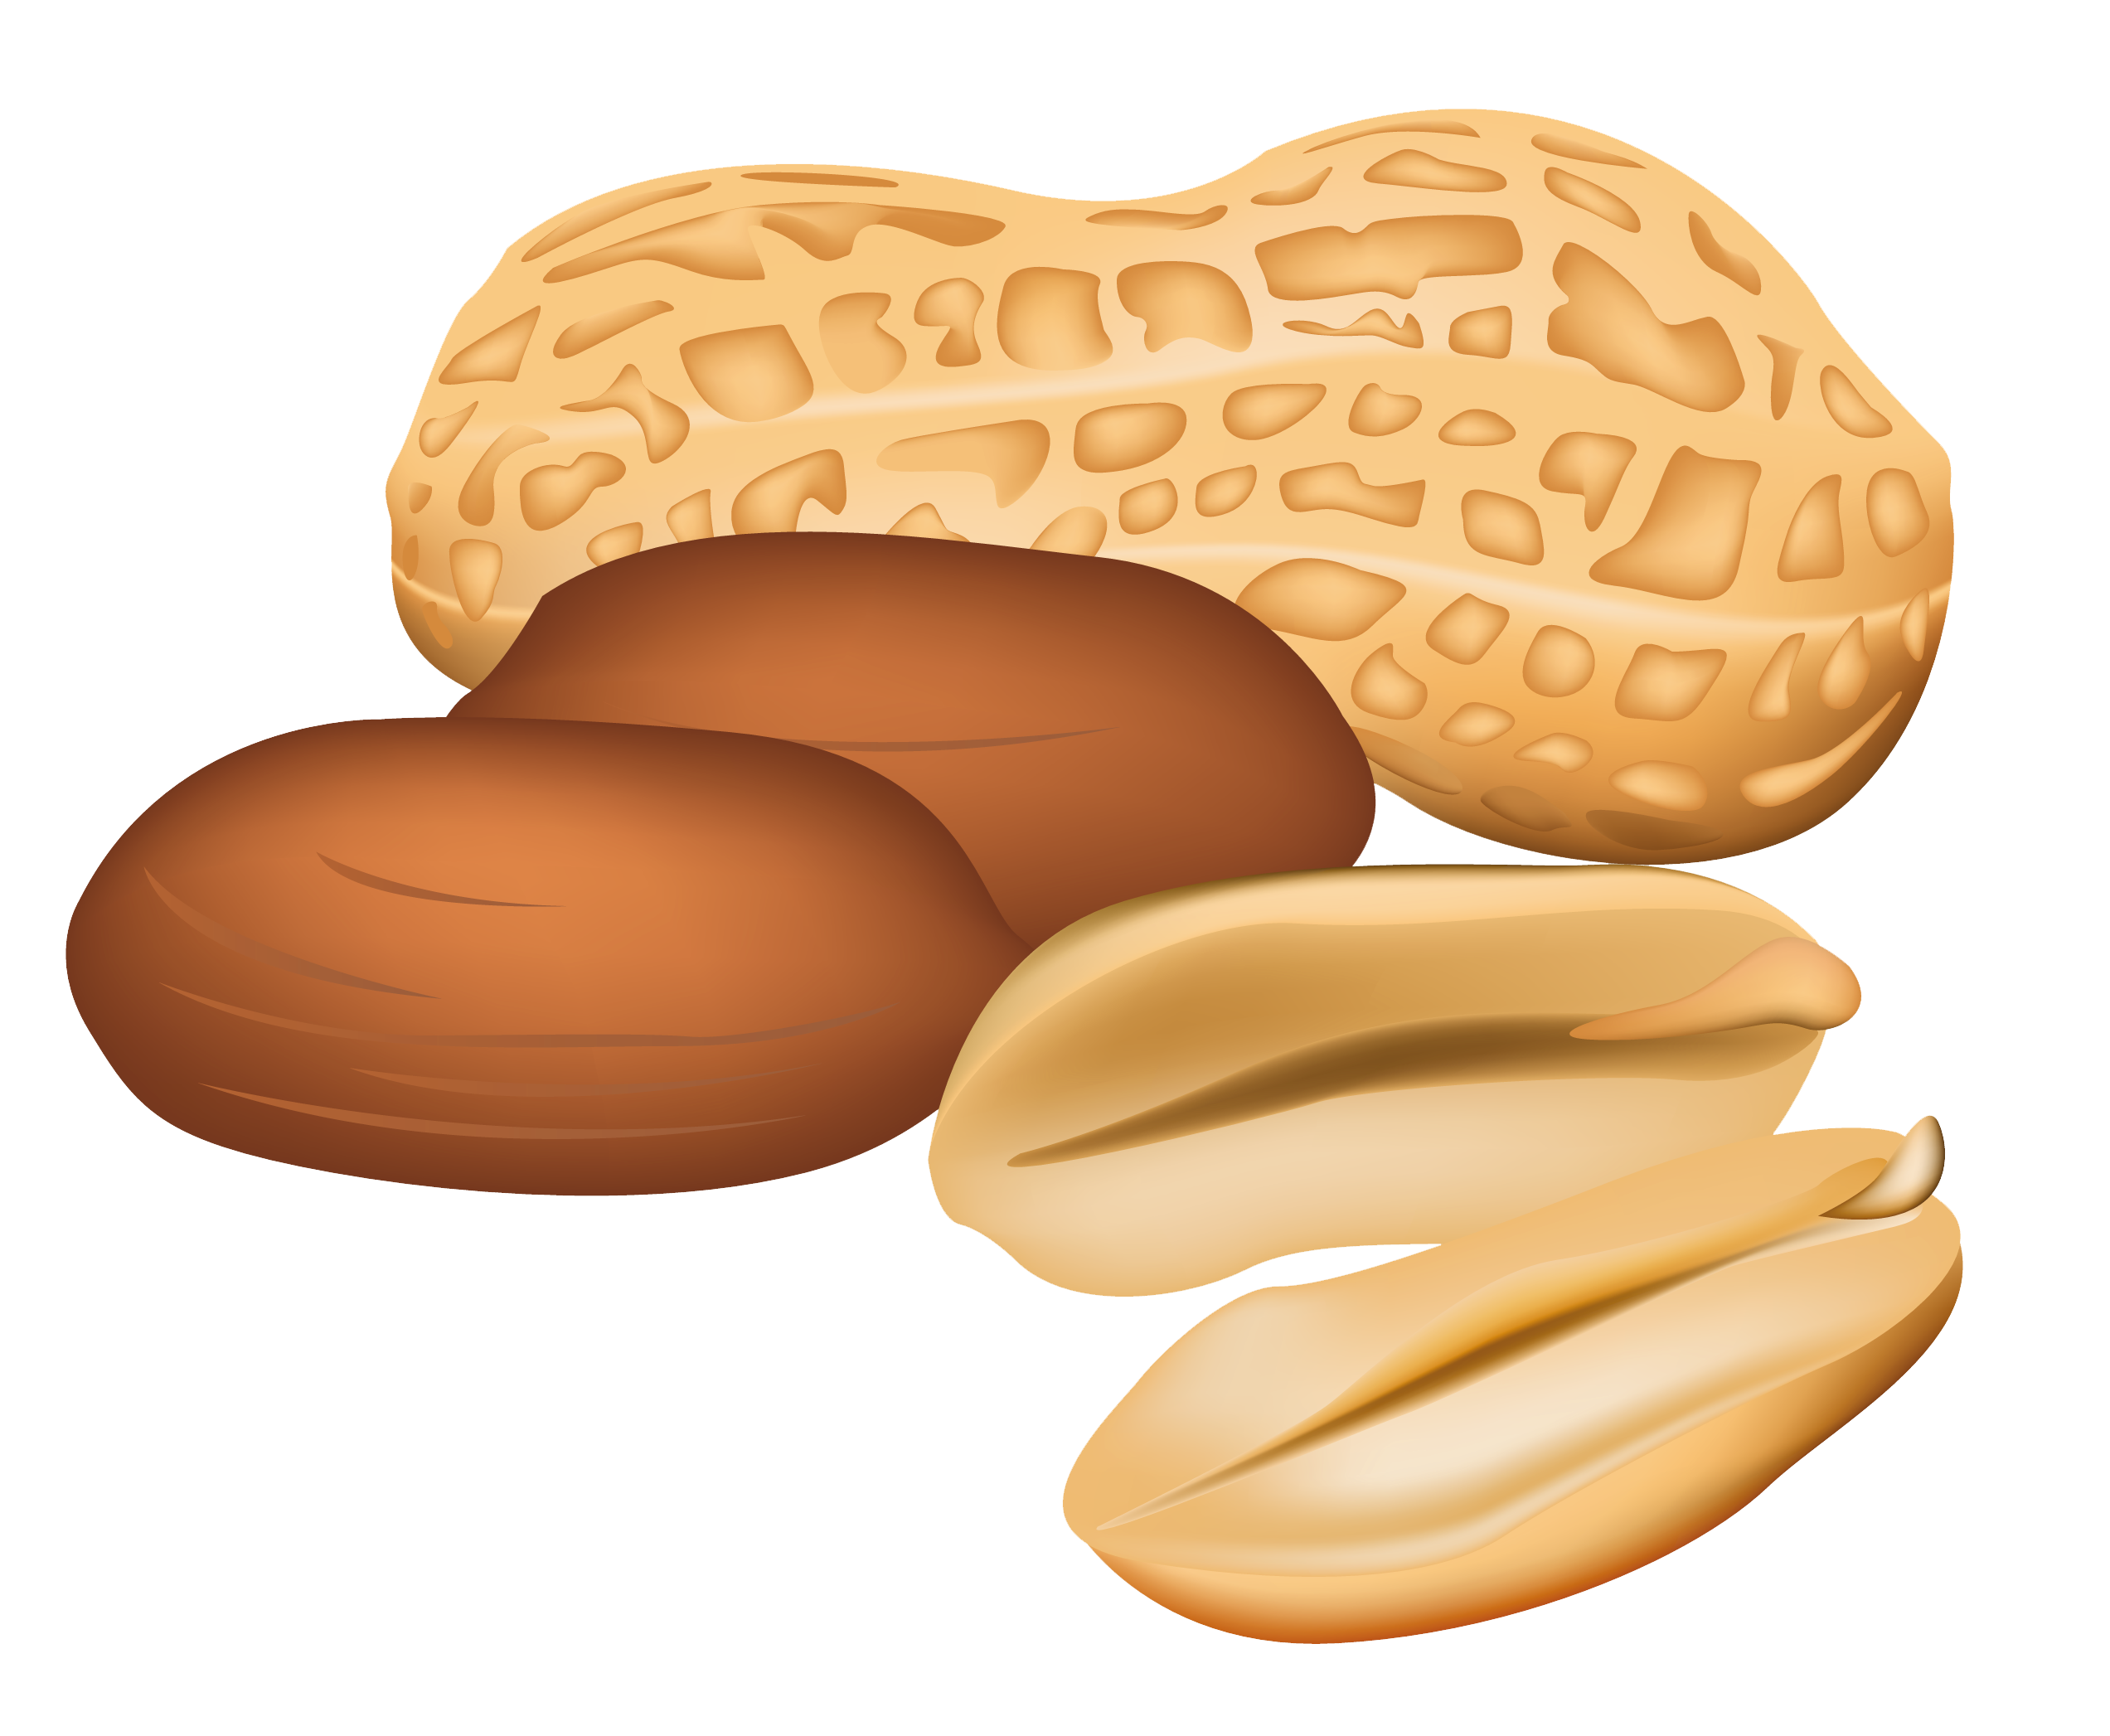 Nut clipart Nuts No collection clipart Clipart